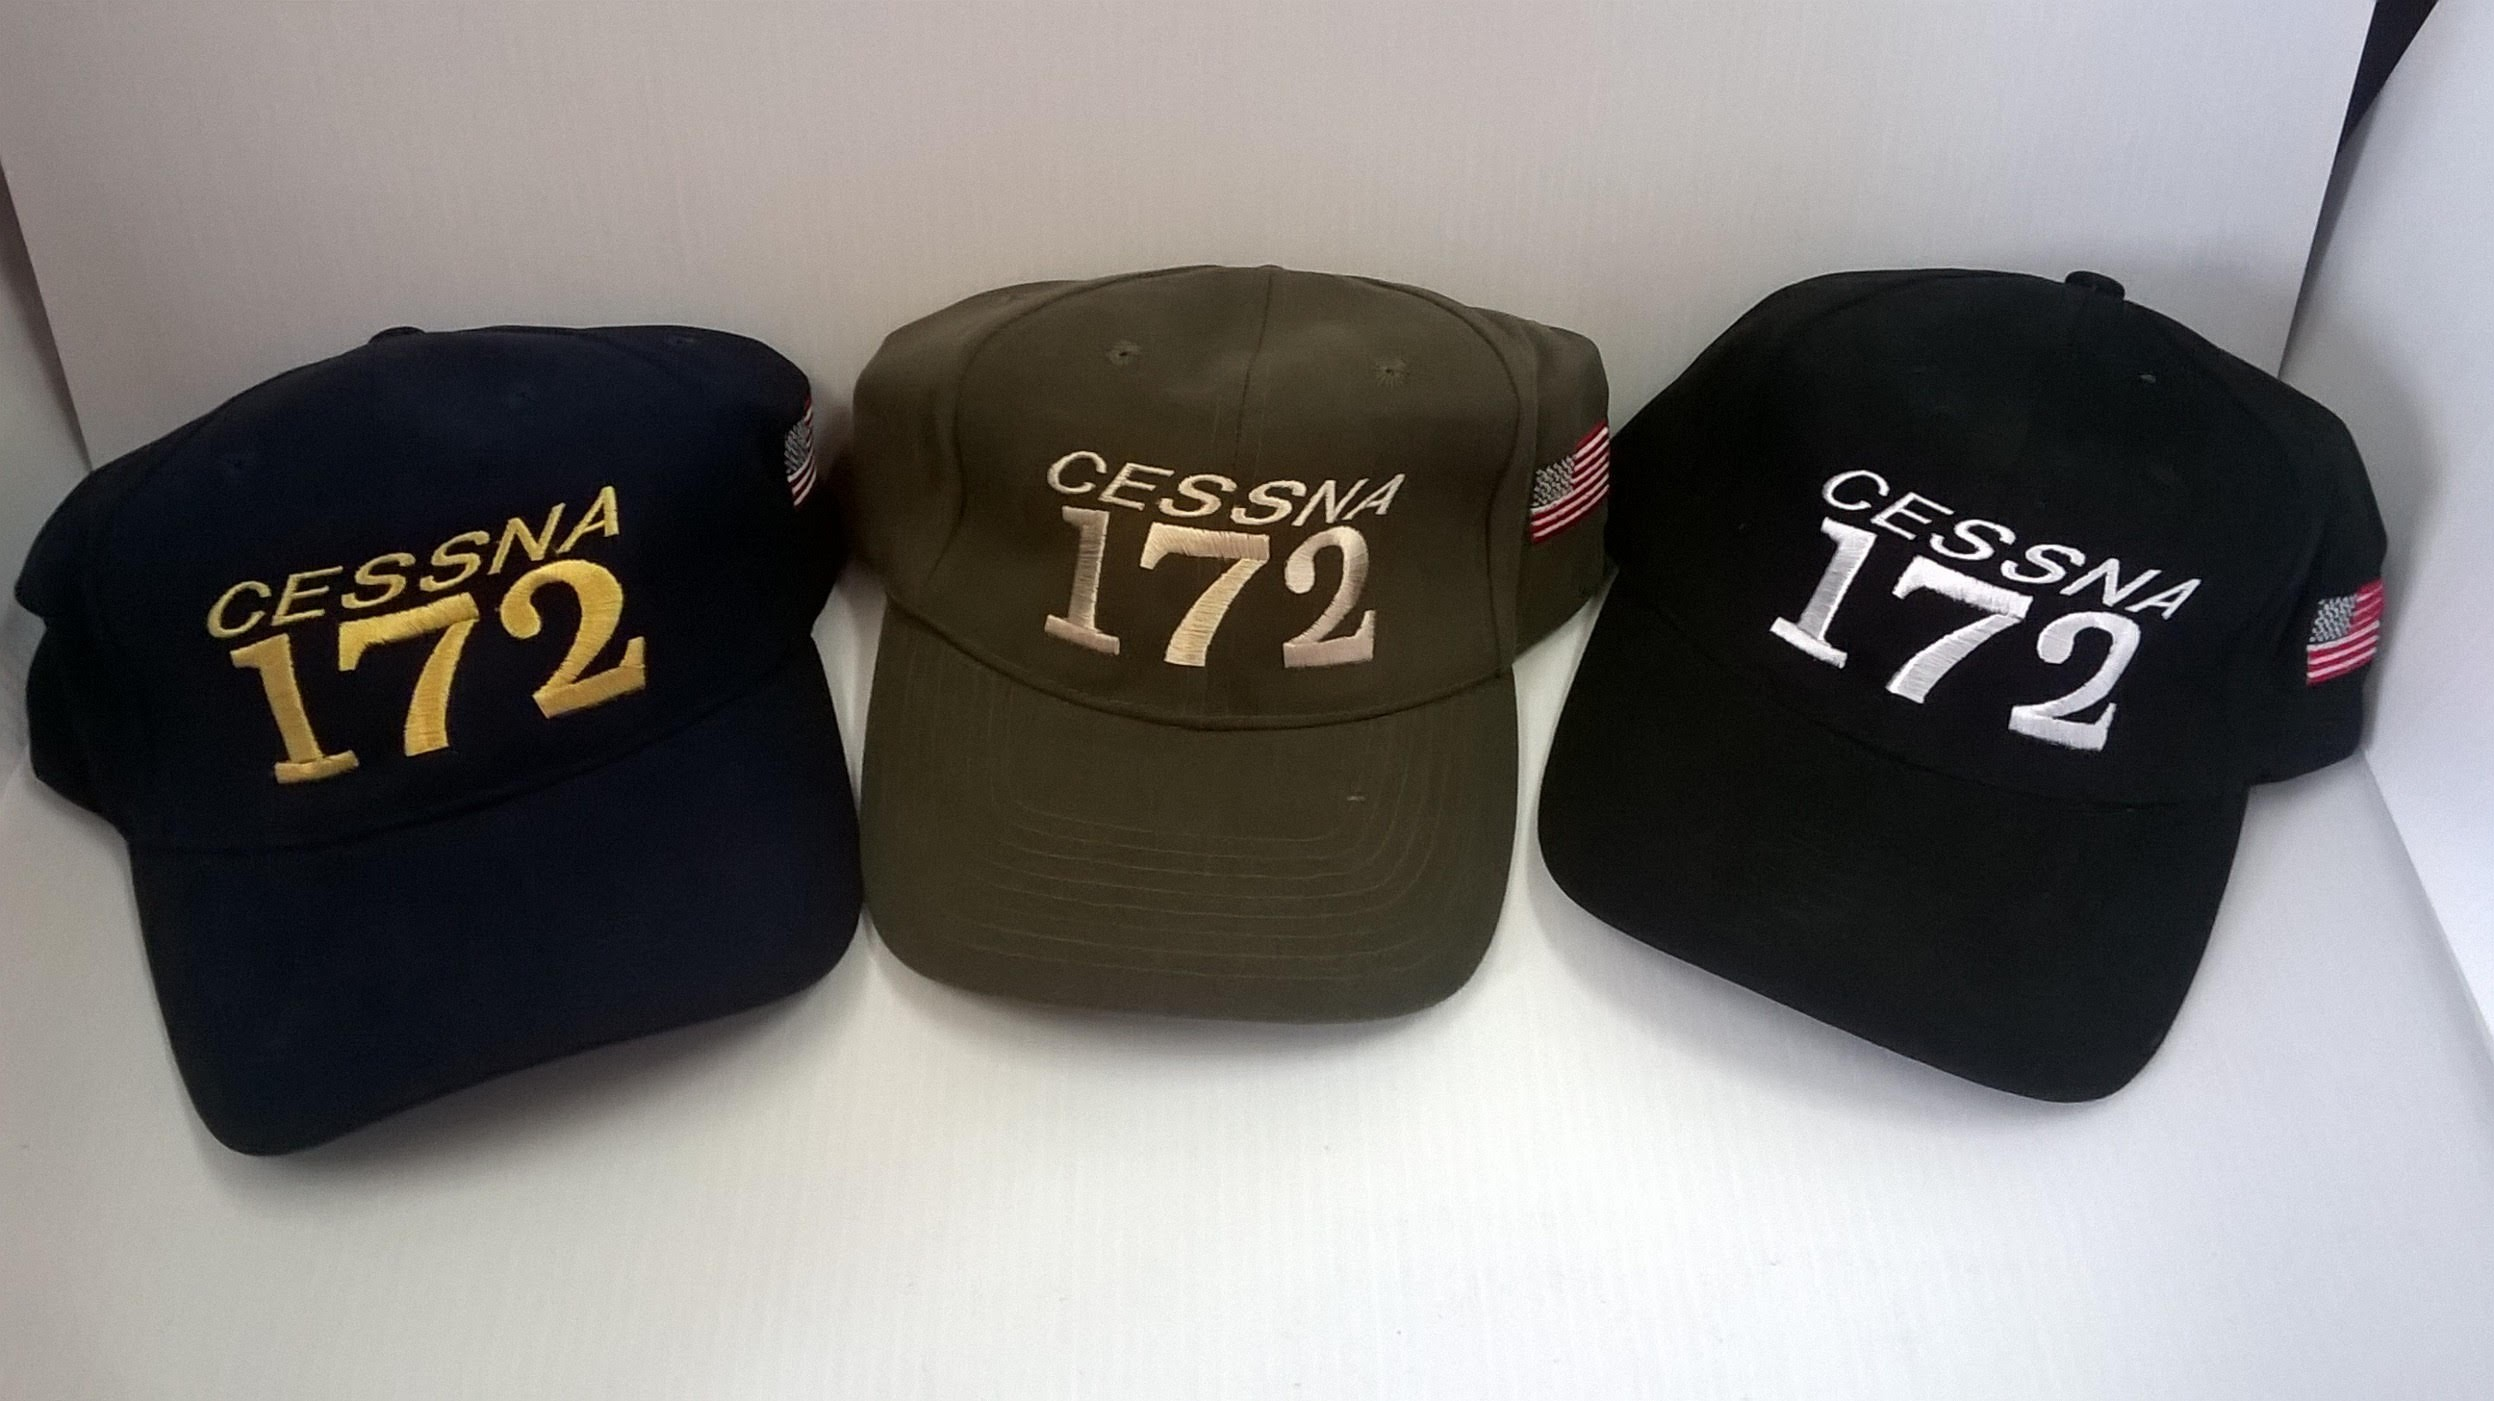 Cessna Airplane Cap